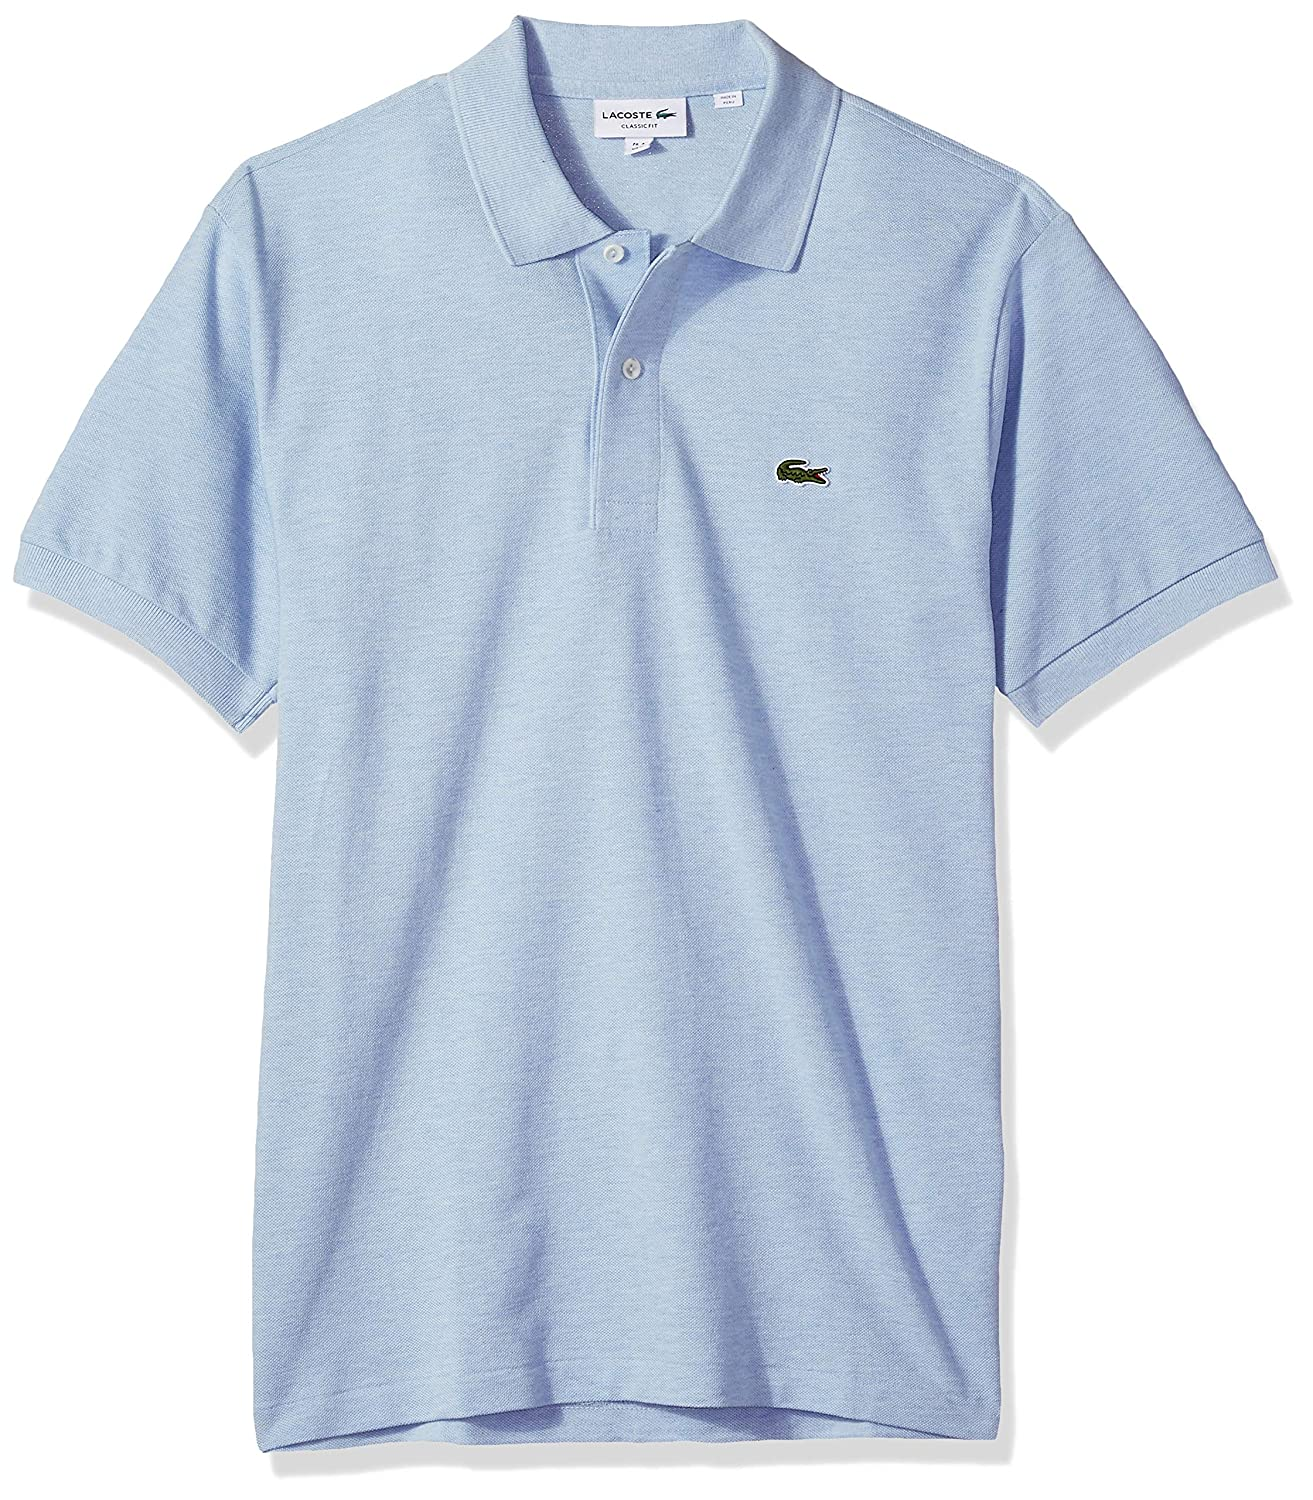 0be719e31c Buy Online Lacoste T Shirts In India – EDGE Engineering and ...